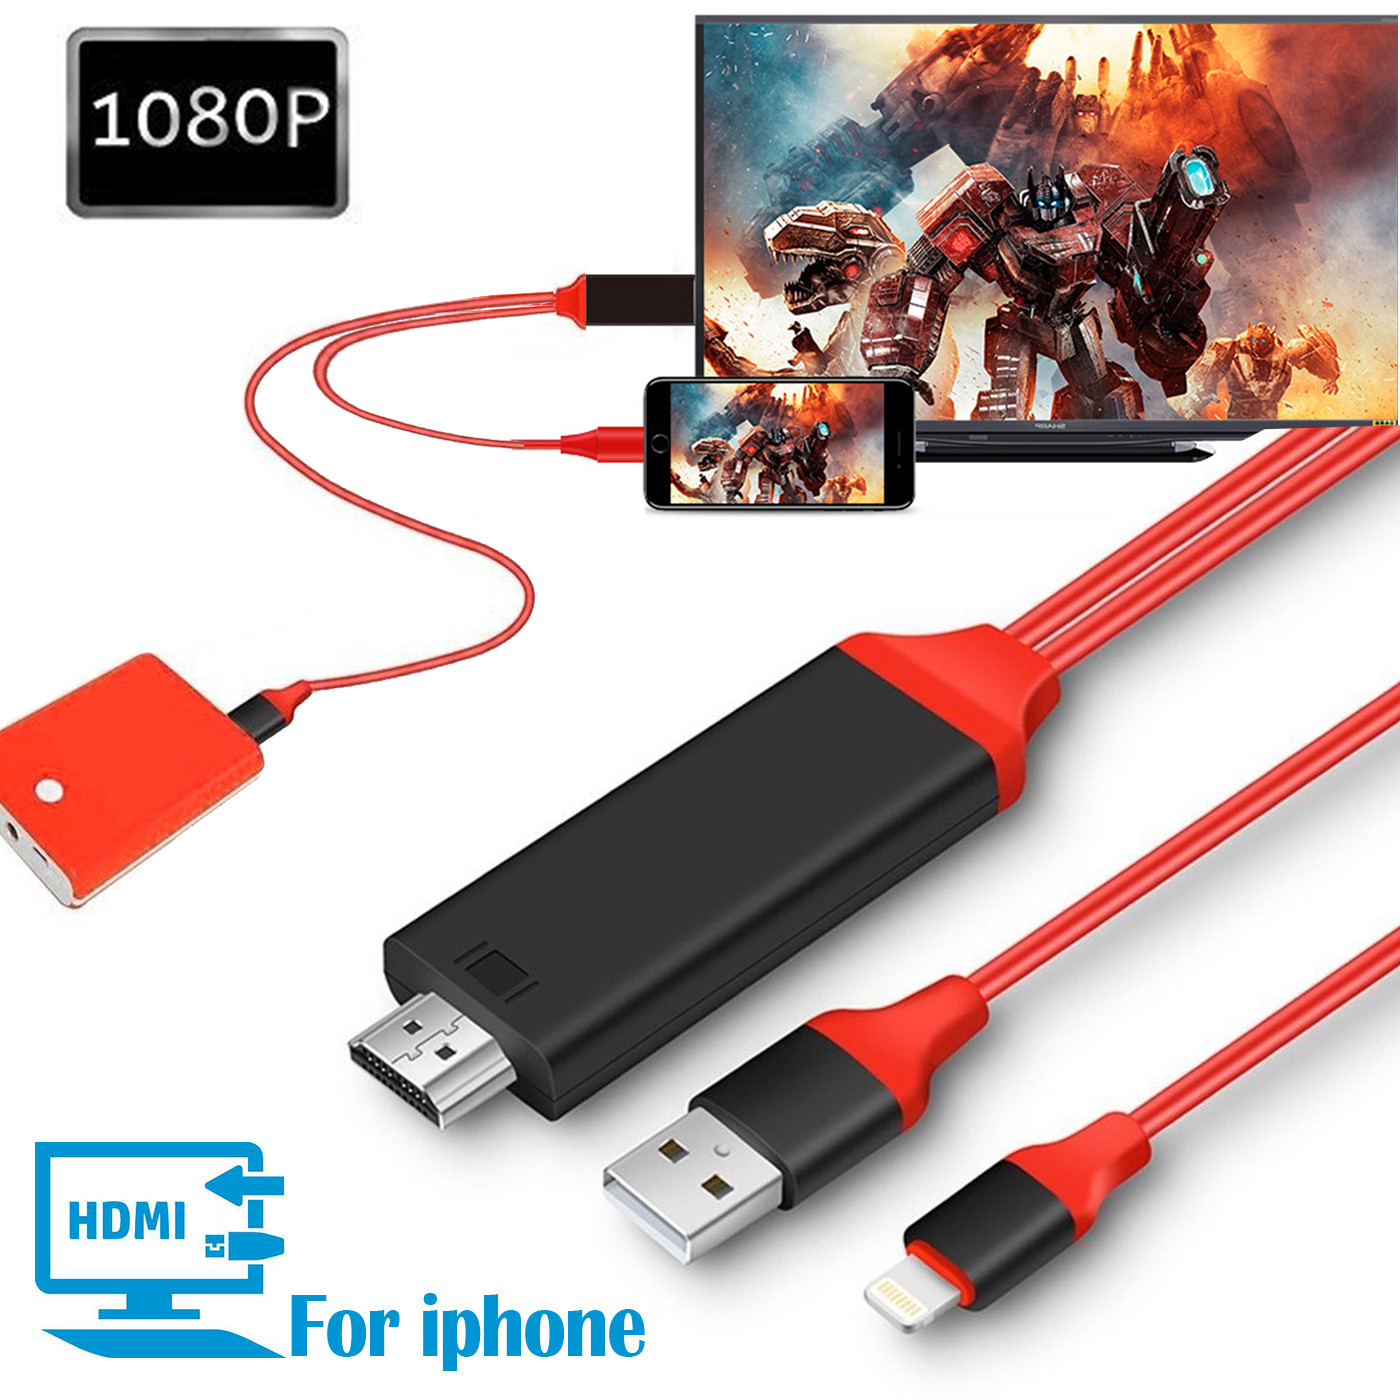 iphone to hdmi walmart lightning to hdmi adapter cable 6 6ft 1080p iphone 15494